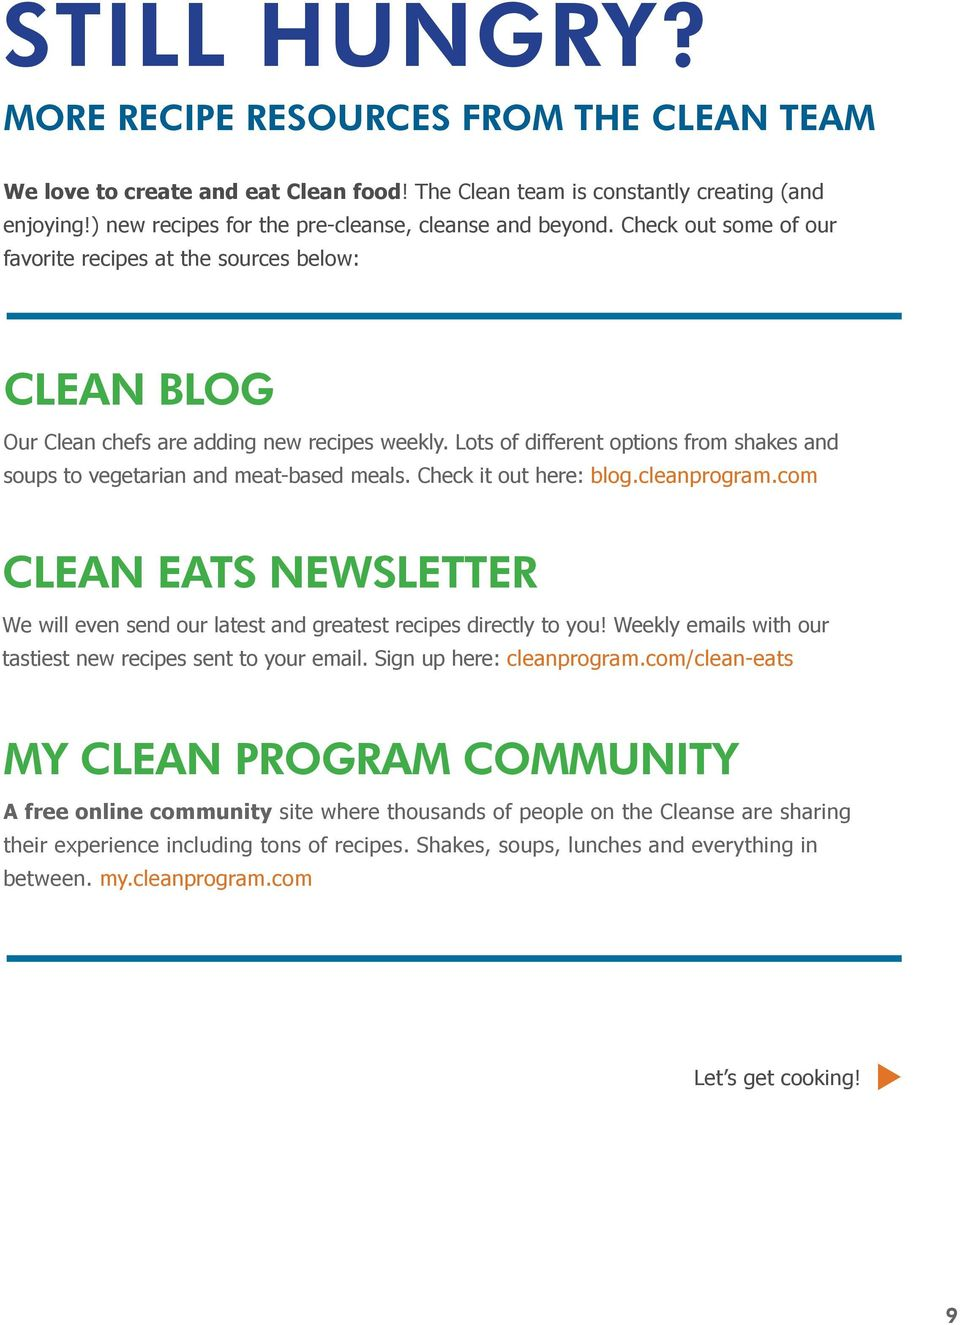 Lots of different options from shakes and soups to vegetarian and meat-based meals. Check it out here: blog.cleanprogram.